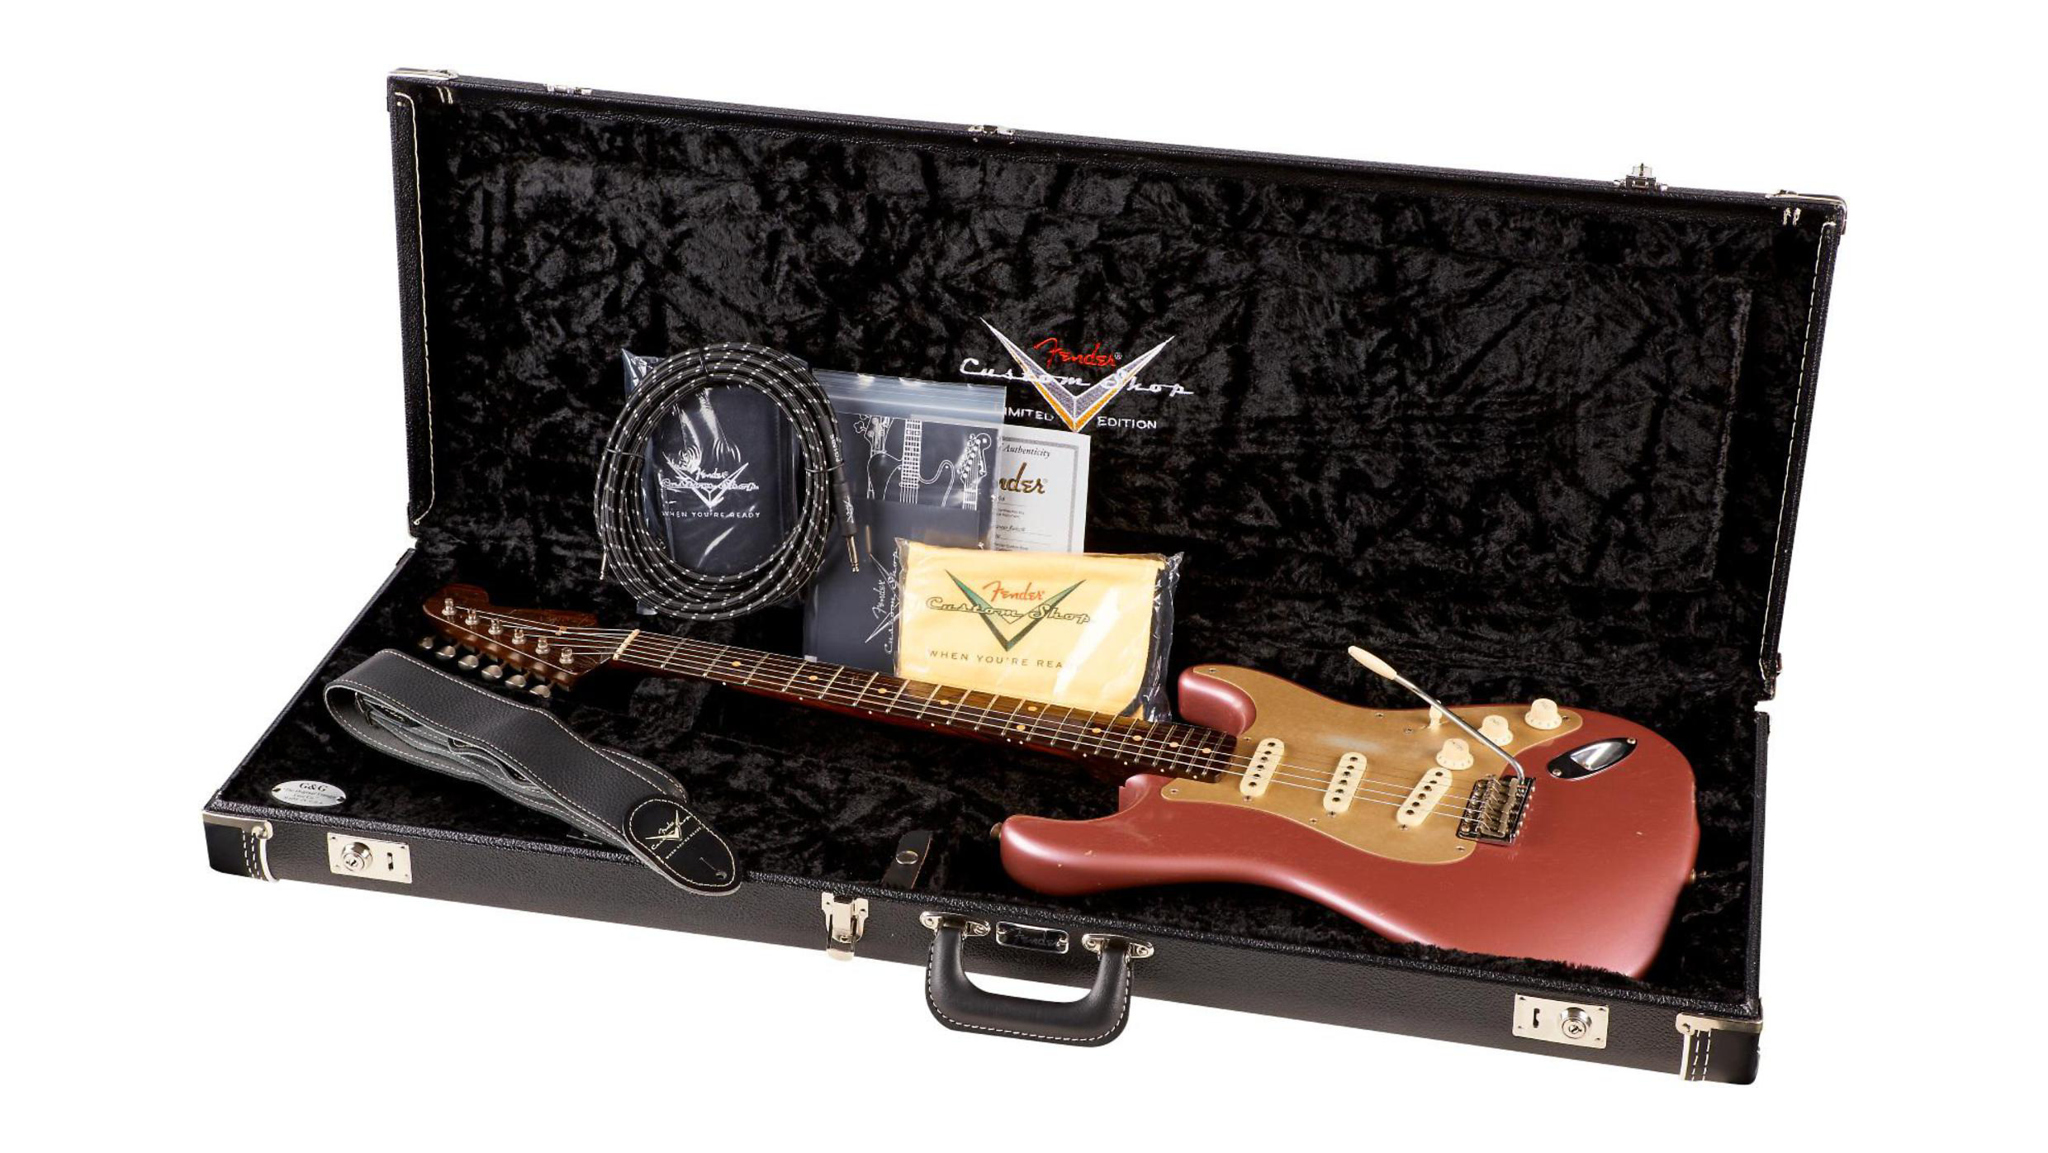 Fender Custom Shop Limited Edition NAMM Custom Built '50s Journeyman Relic Rosewood Neck Stratocaster